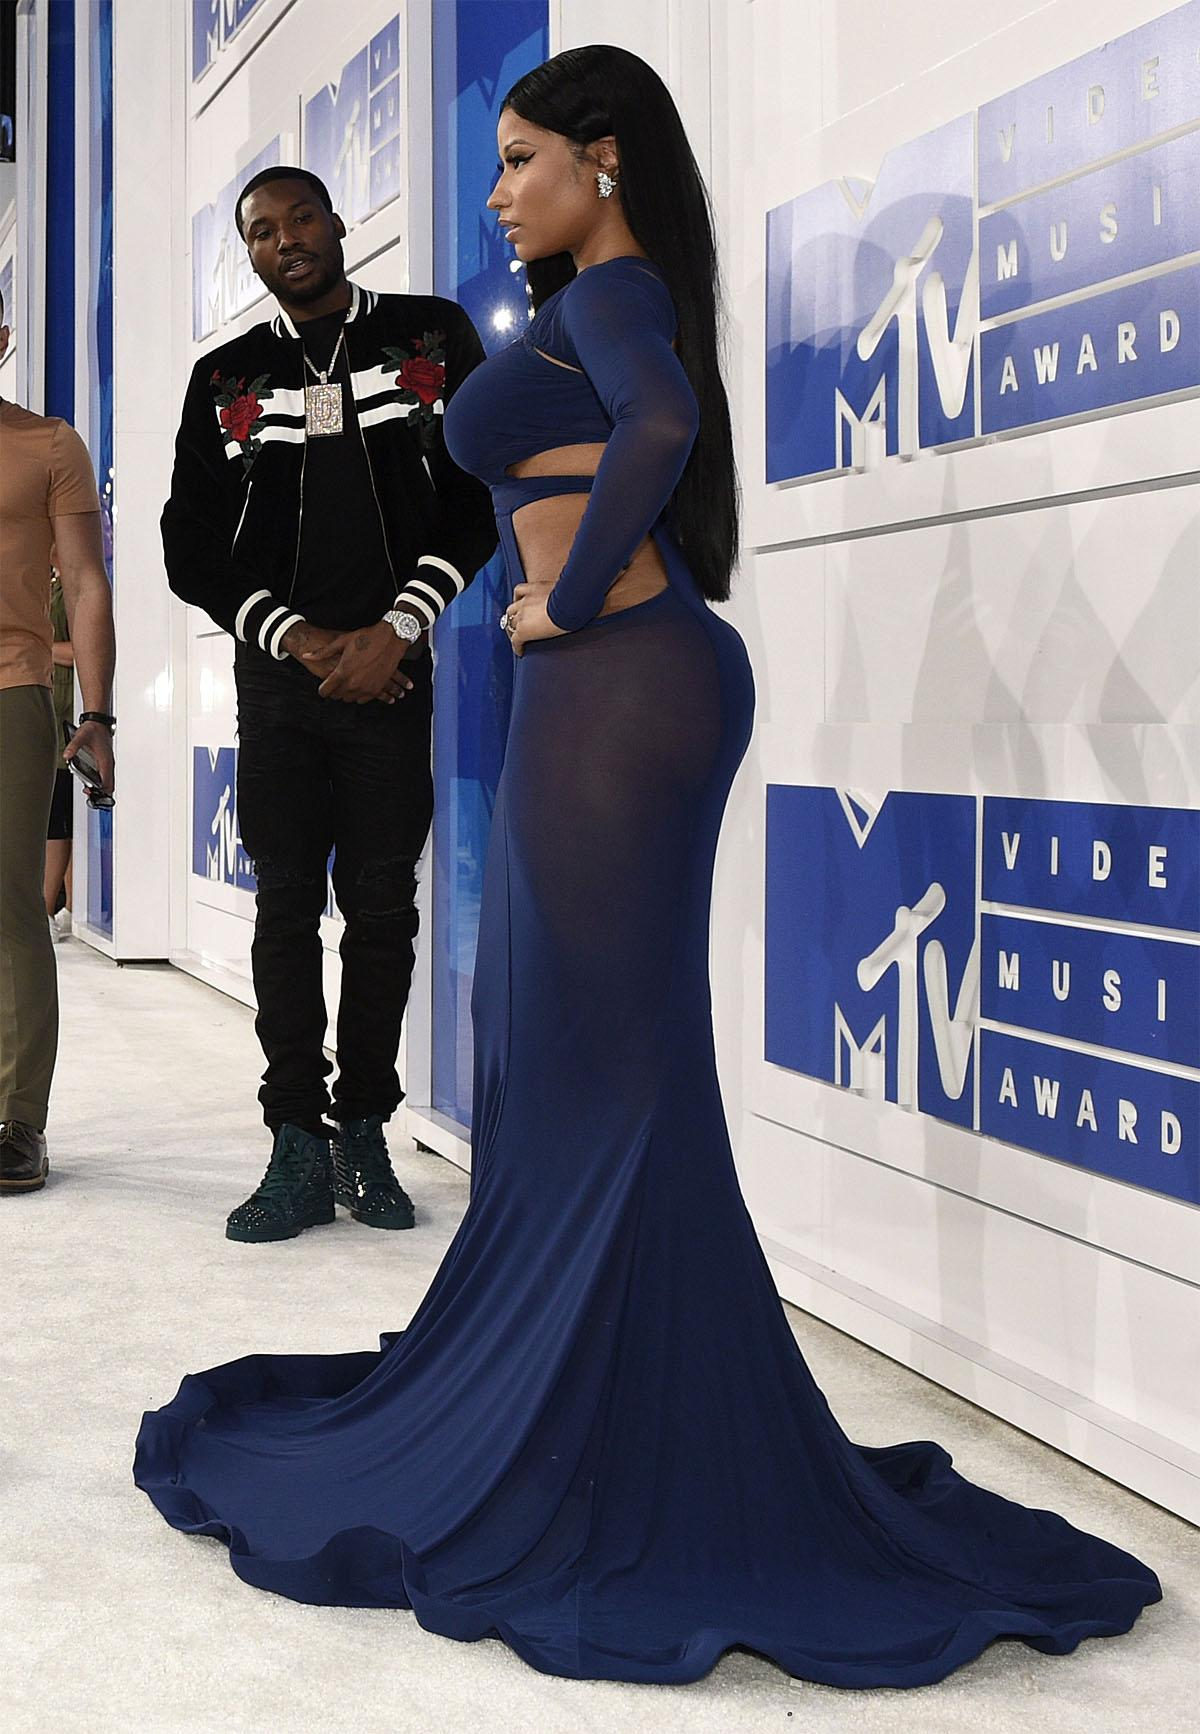 Nicki Minaj, from right, and Meek Mill arrive at the MTV Video Music Awards at Madison Square Garden on Sunday, Aug. 28, 2016, in New York. (Photo by Chris Pizzello/Invision/AP)